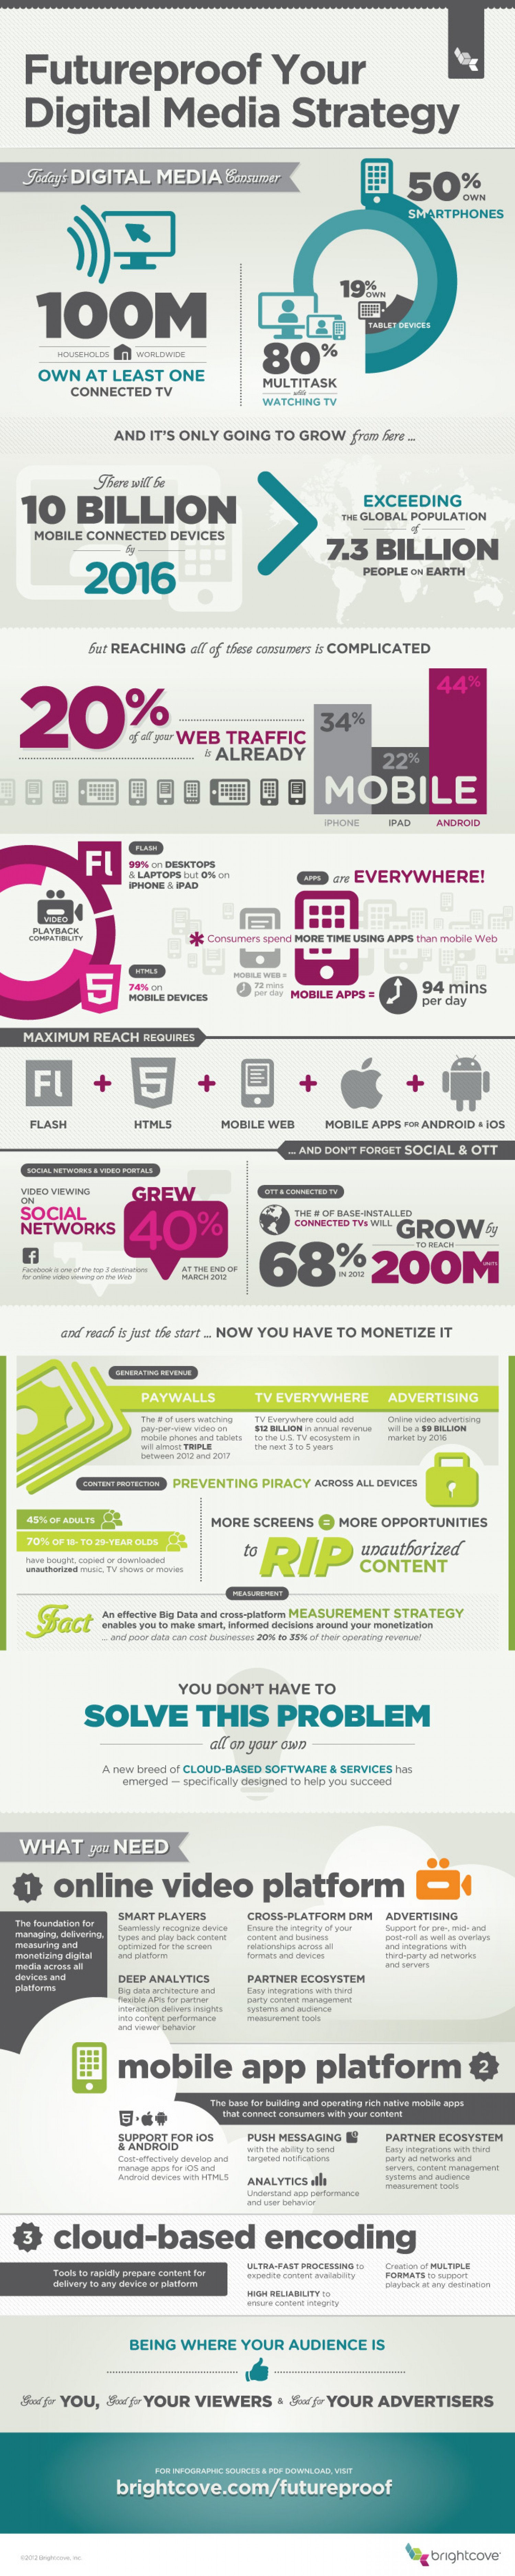 Futureproof Your Digital Media Strategy Infographic